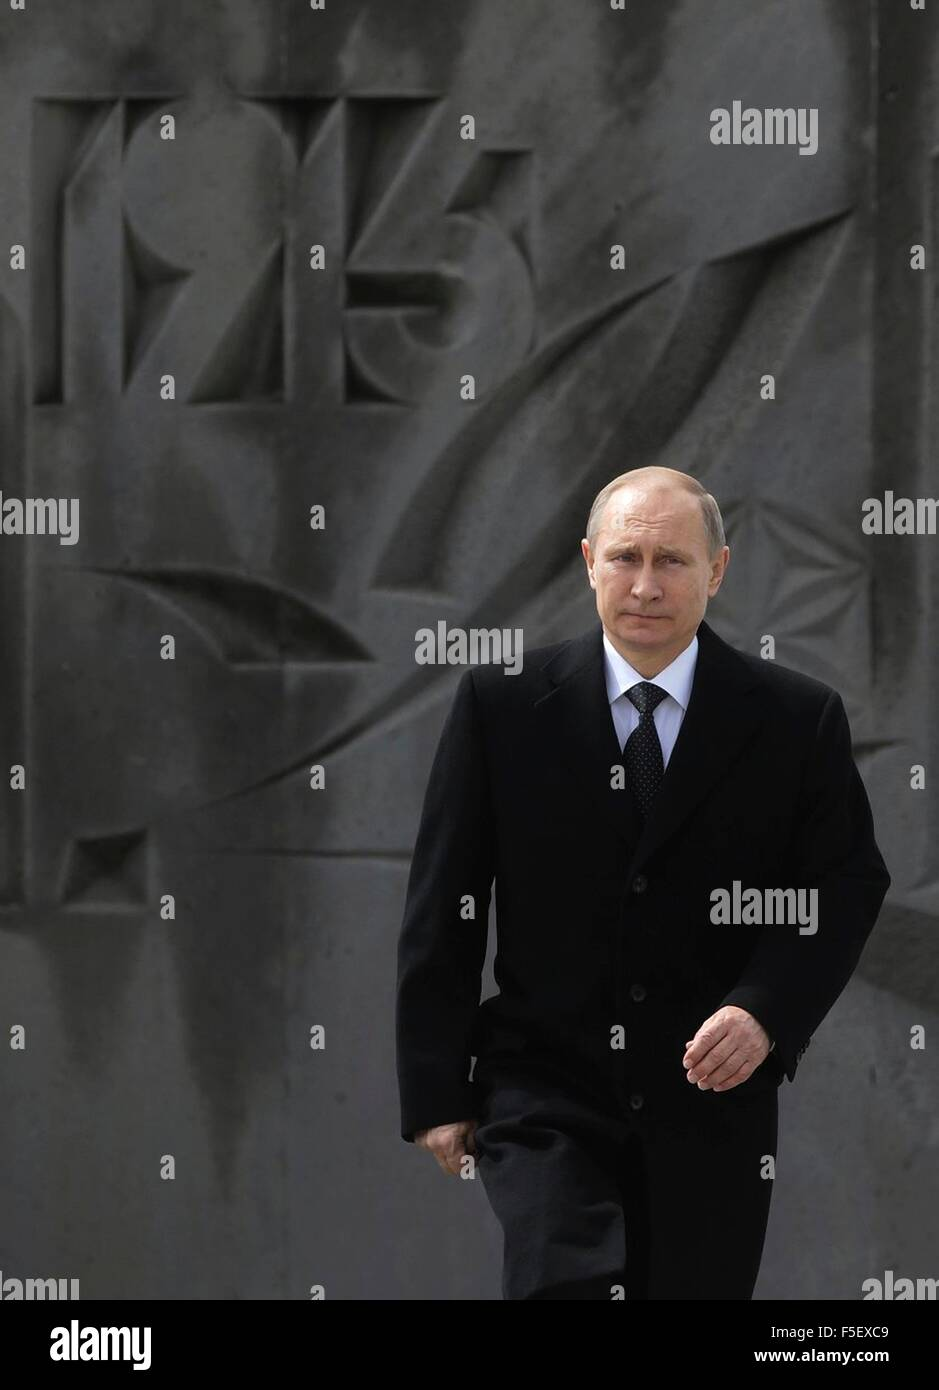 Russian President Vladimir Putin at a memorial ceremony for the Armenian genocide's victims at the Tsitsernakaberd - Stock Image